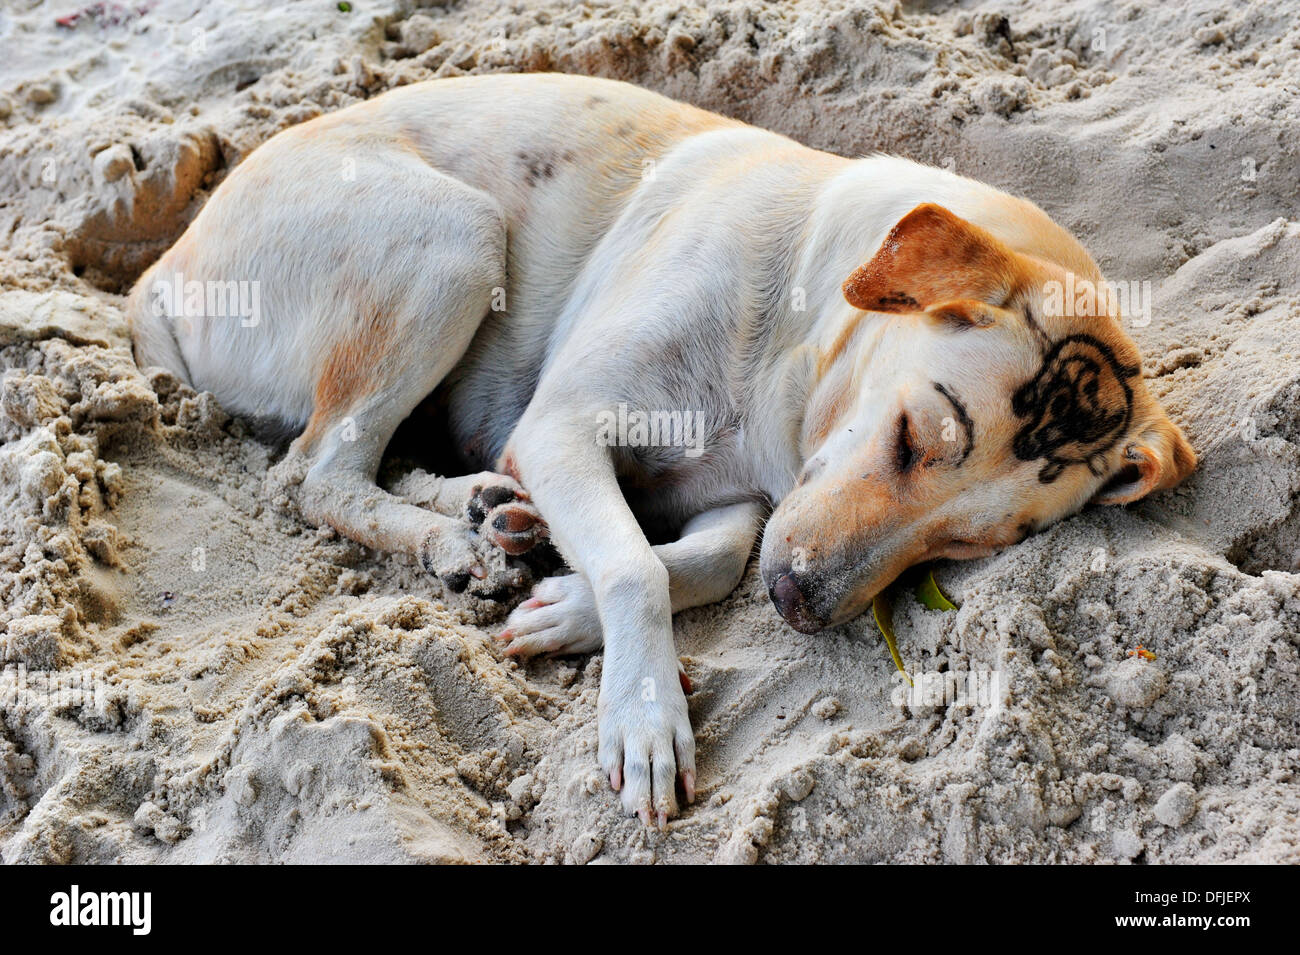 Thailand's islands & beaches - A dog with tattoo eyebrows sleeping on Sai Kaew beach (Koh Samet, Thailand) Stock Photo